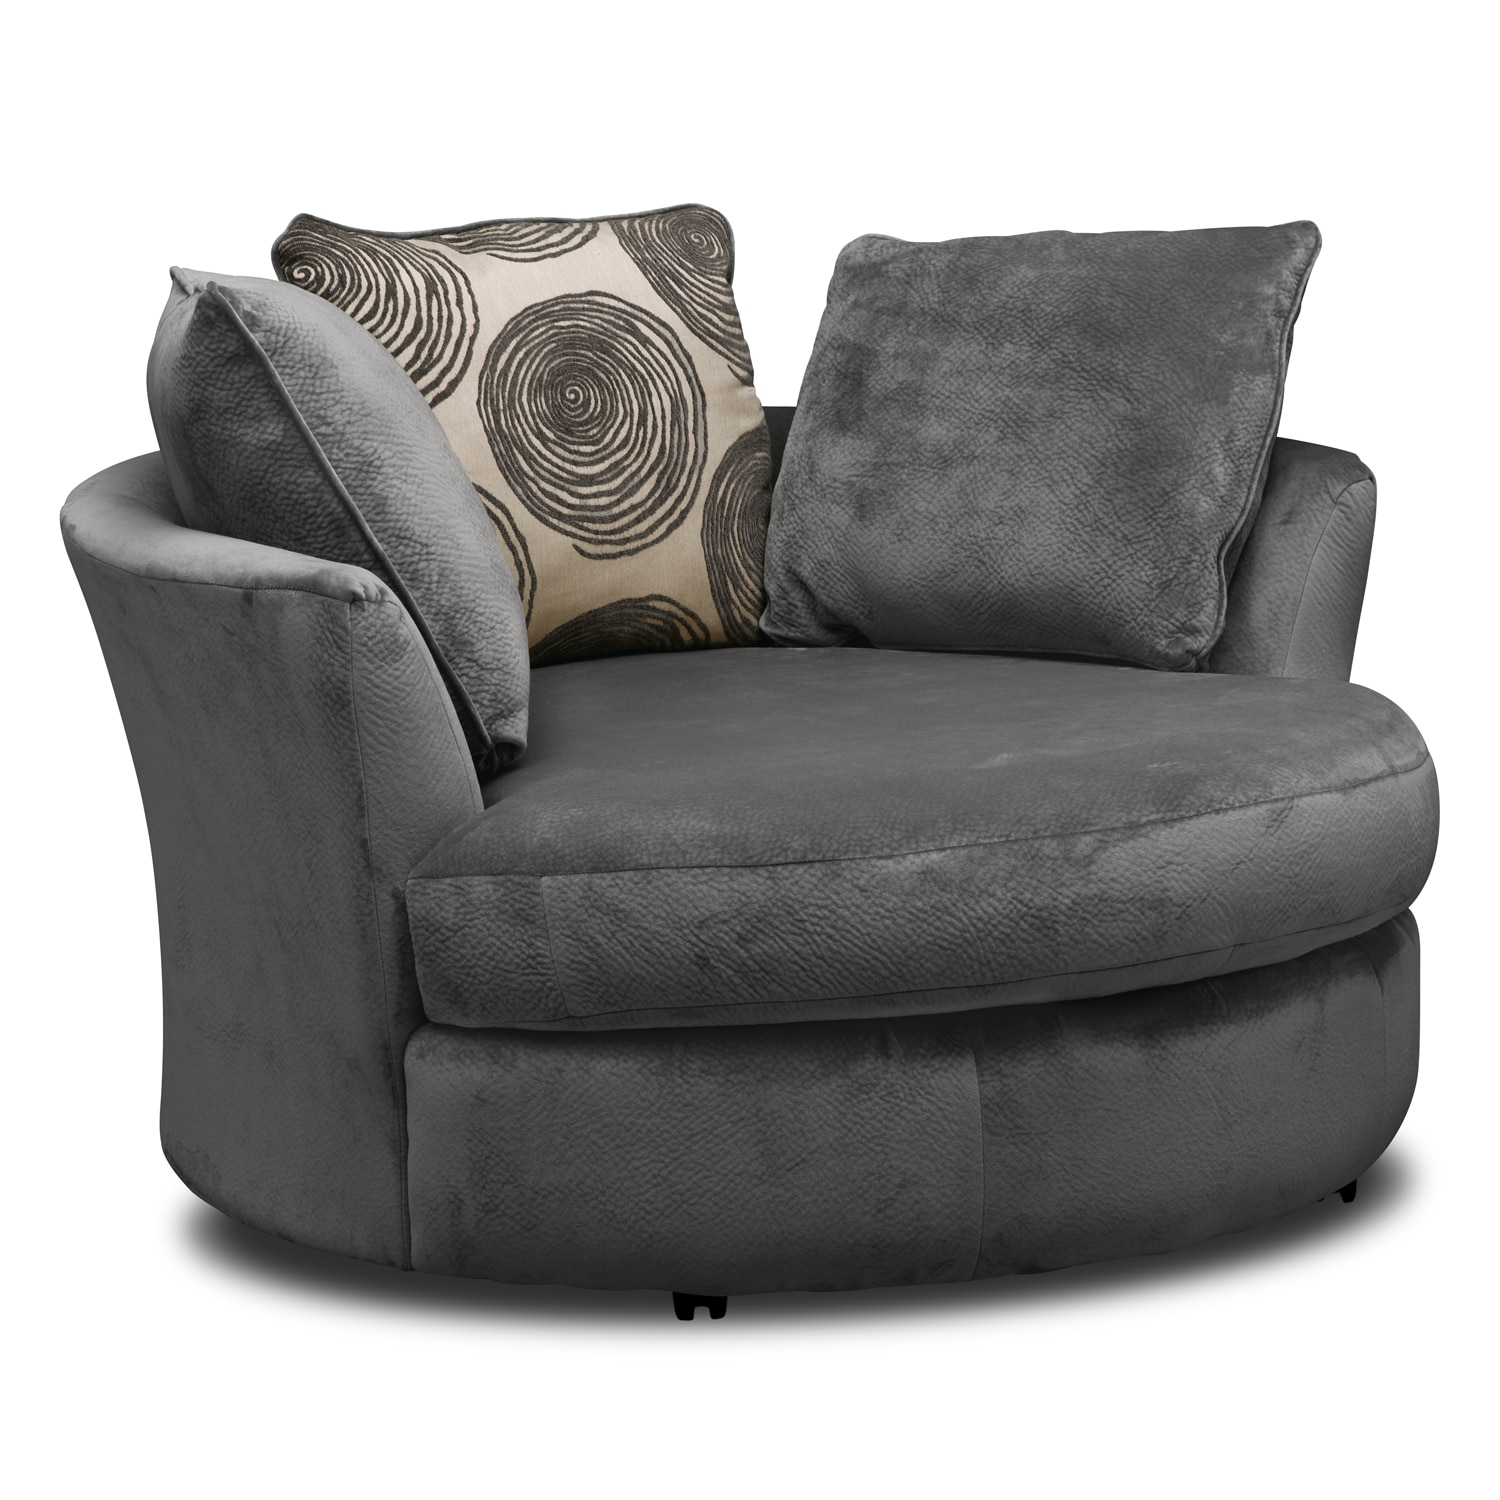 Cordelle Swivel Chair Gray Value City Furniture